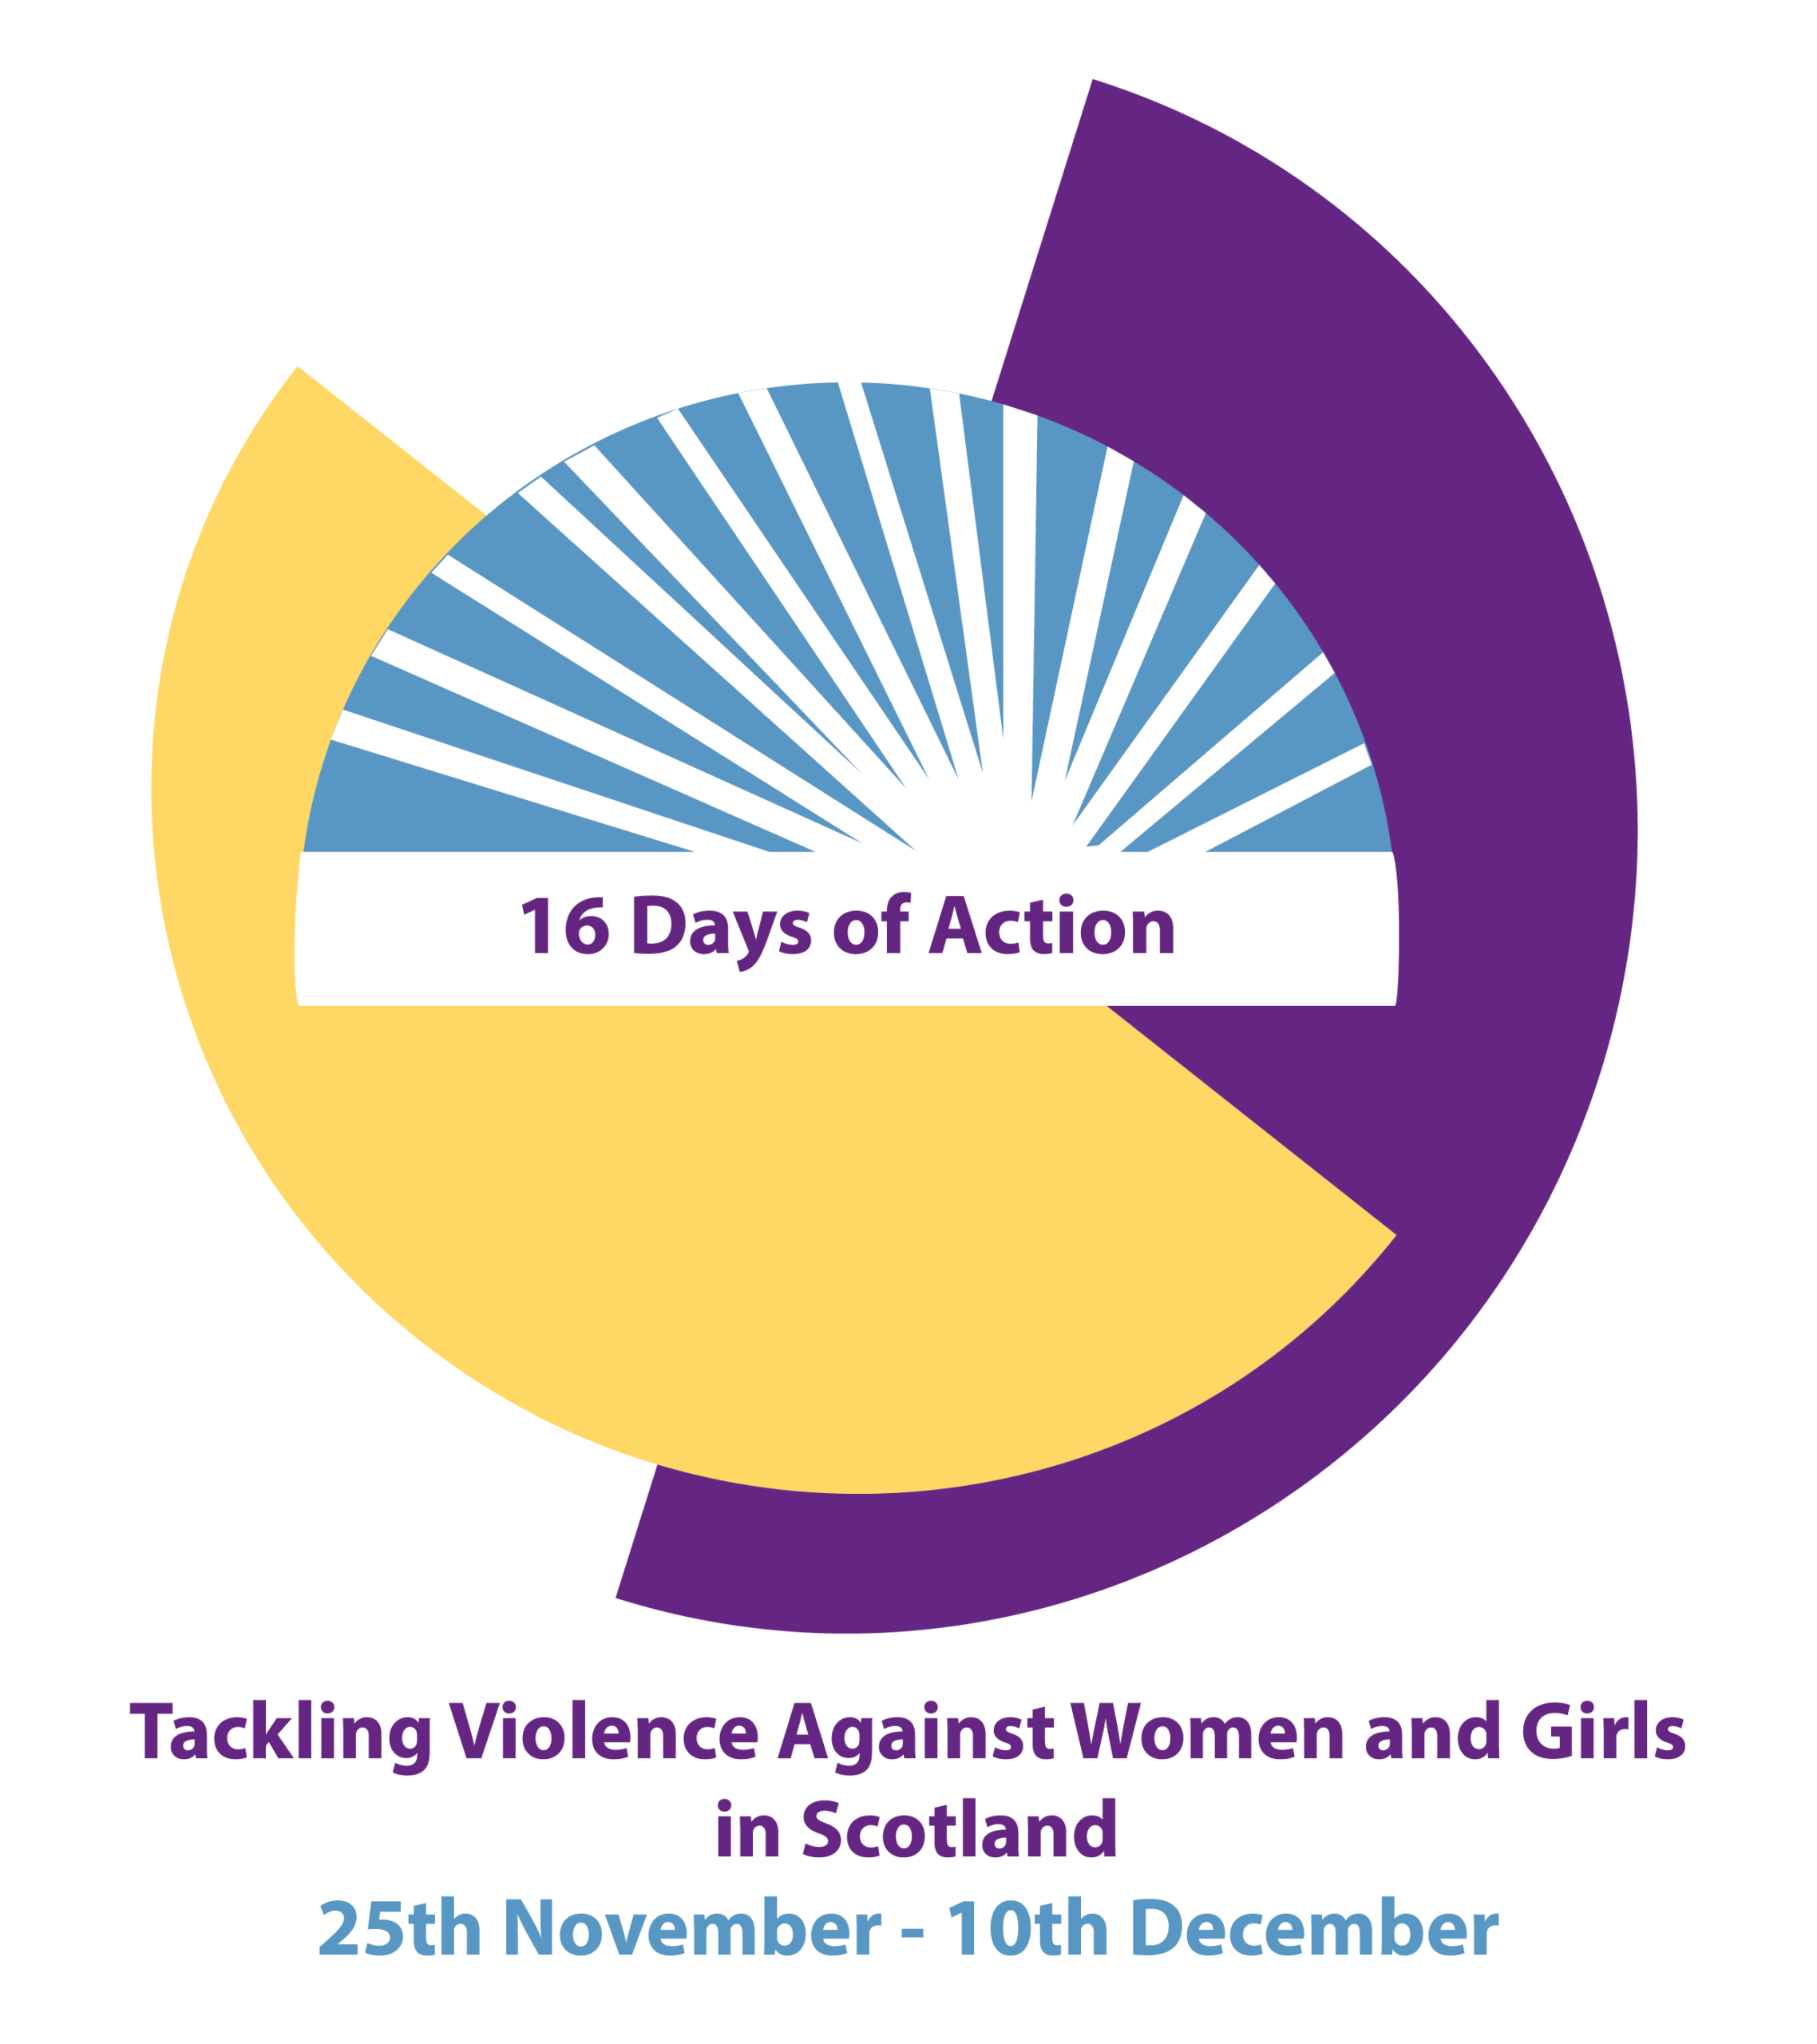 16 Days of Action logo